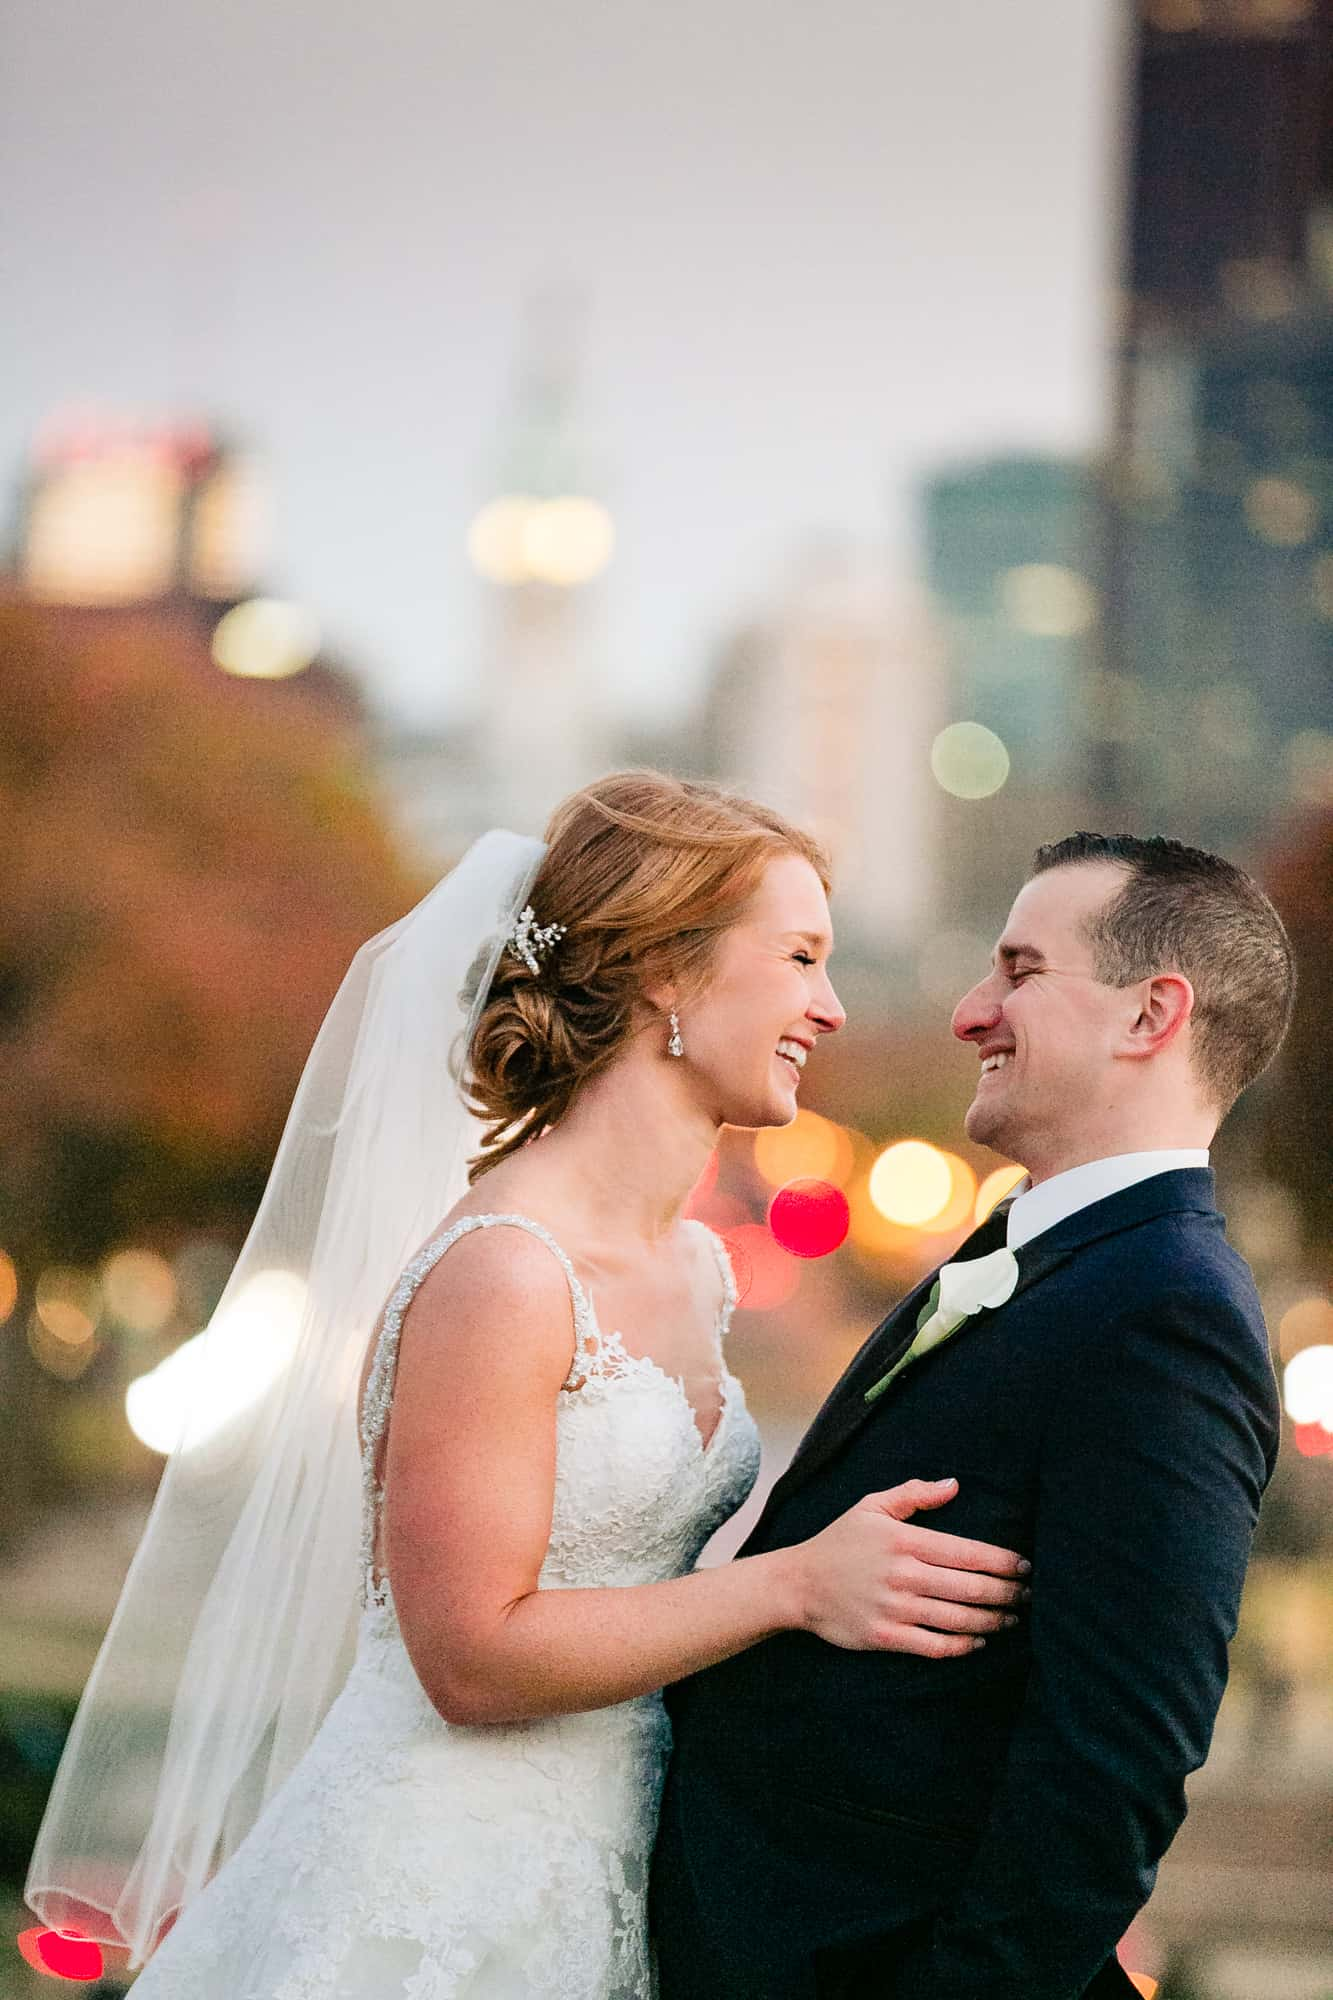 Bride and groom laughing with city lights behind them